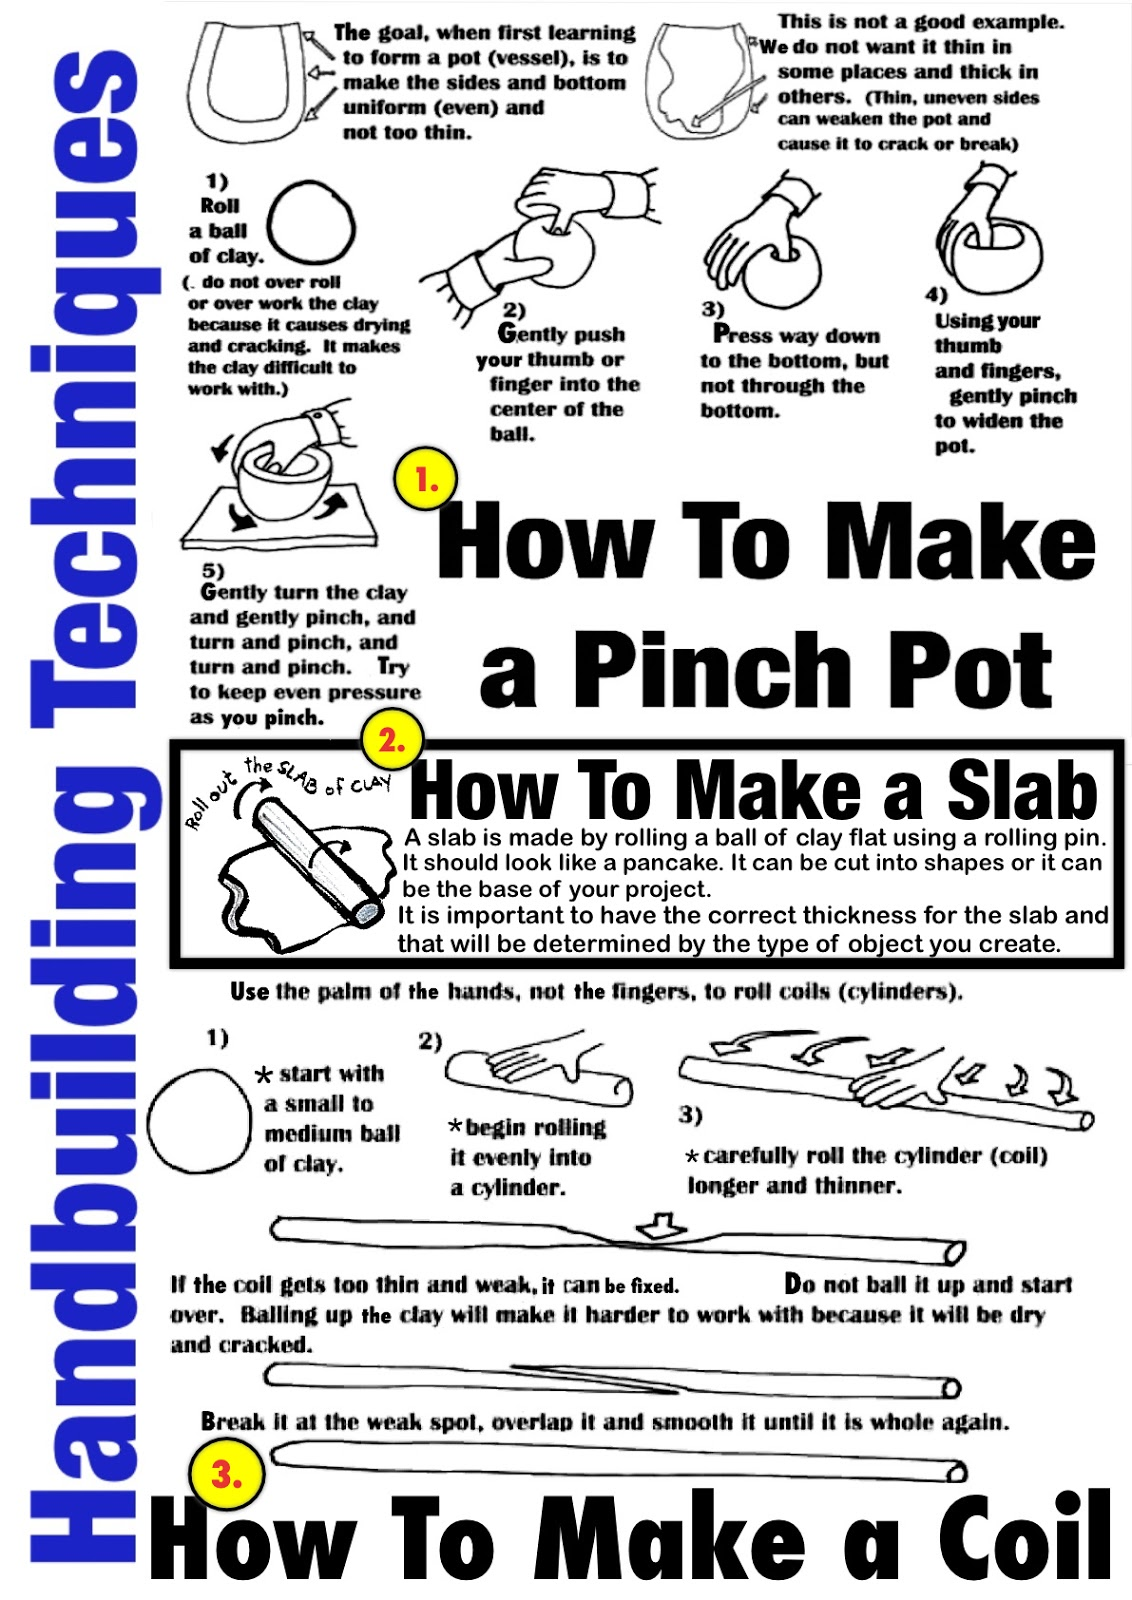 Clay Work Instructions